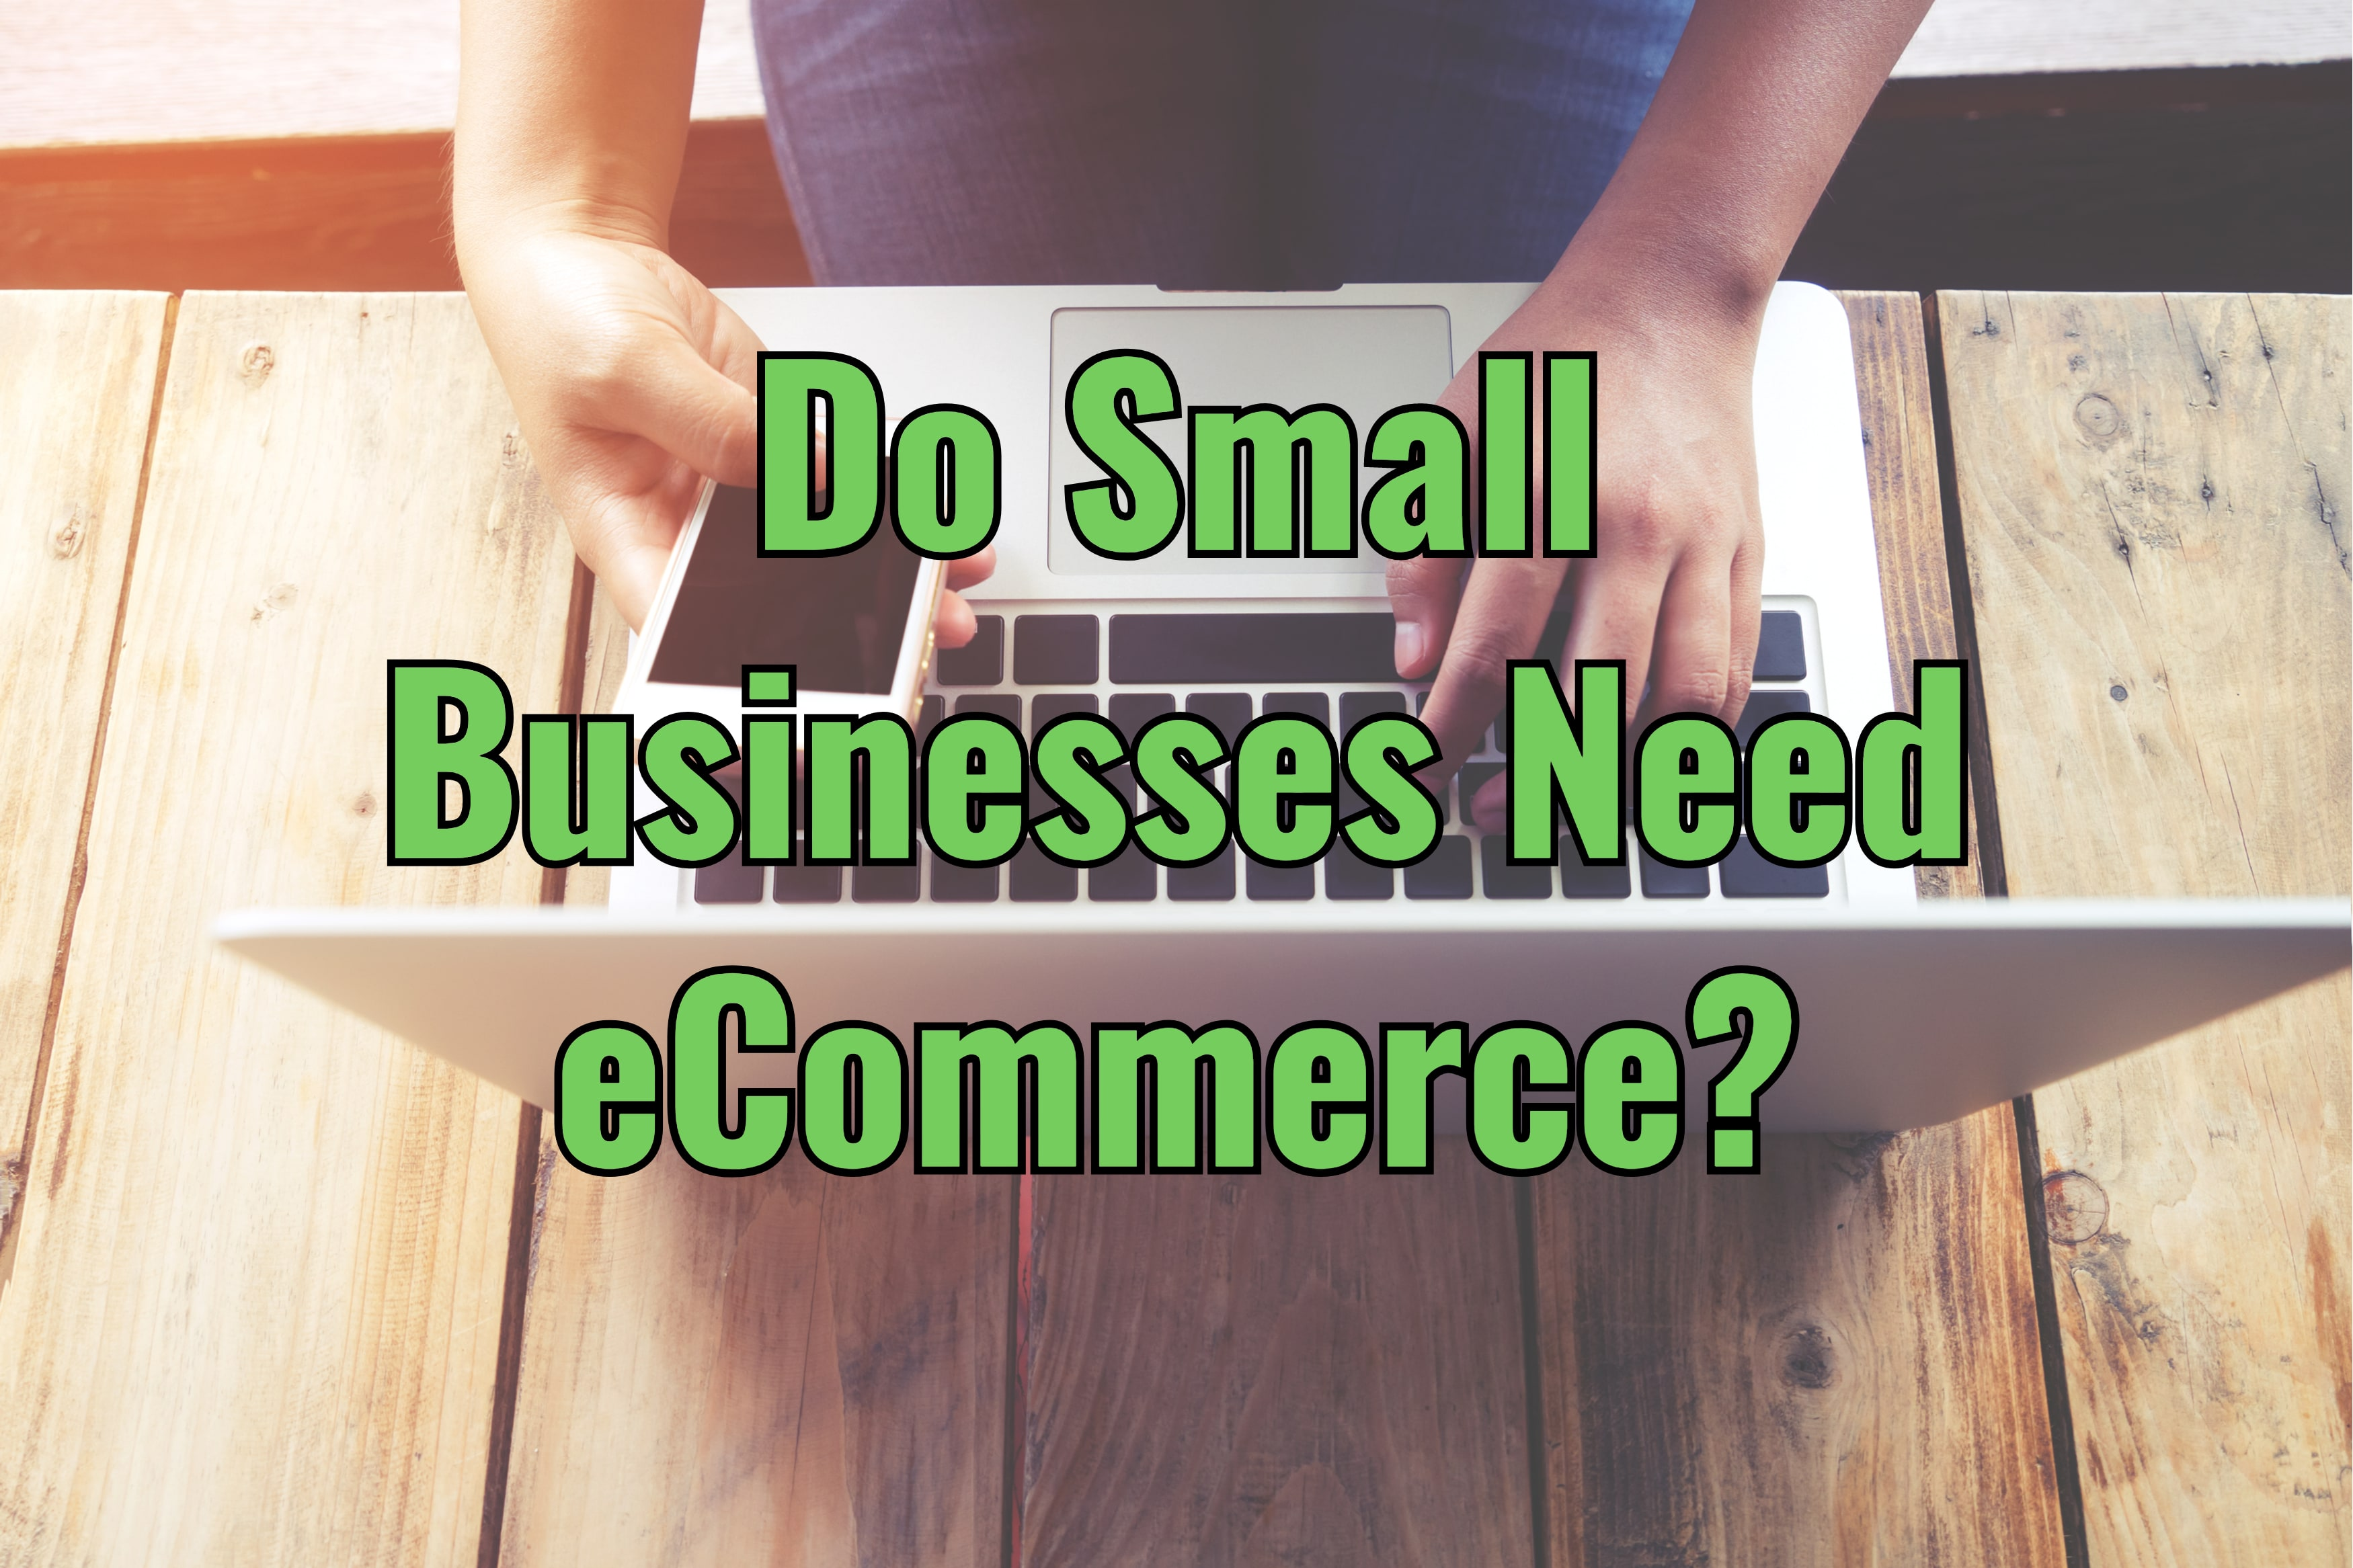 Do Small Businesses Need eCommerce?